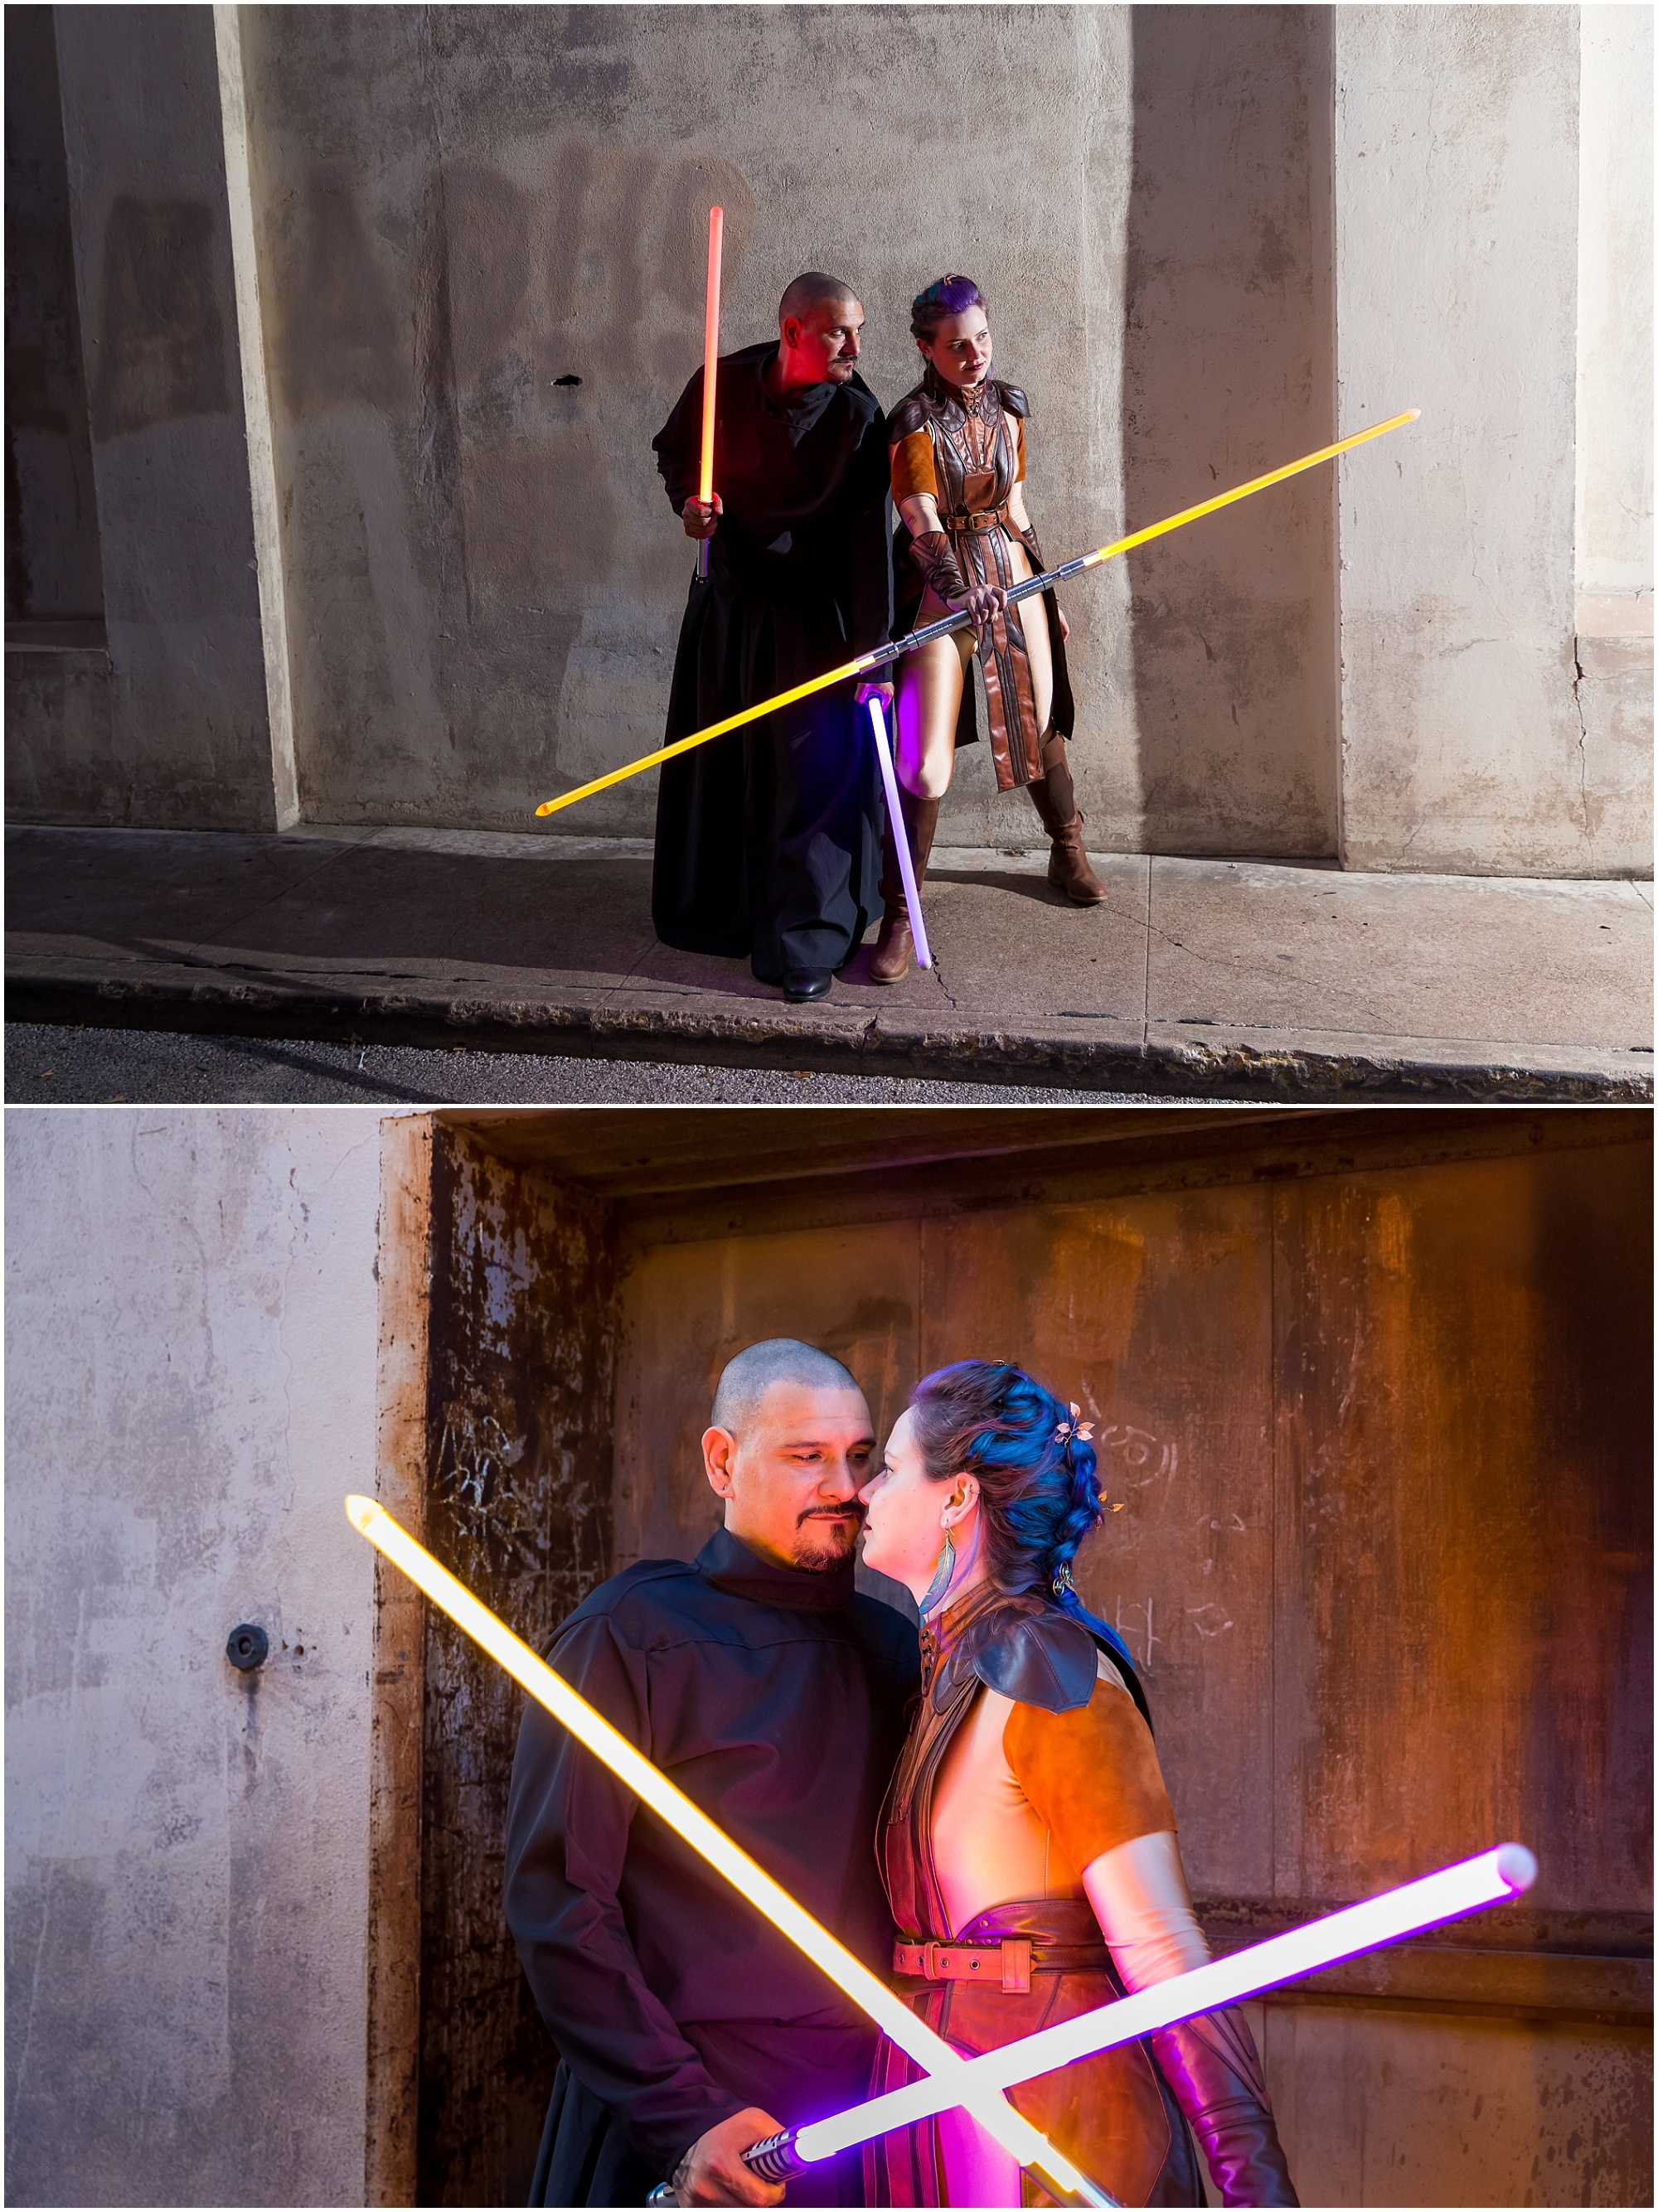 A bride, dressed as a Jedi Knight, and her groom, dressed as a Sith Lord, pose together in downtown Waco on their May 4th wedding day - Jason & Melaina Photography - www.jasonandmelaina.com